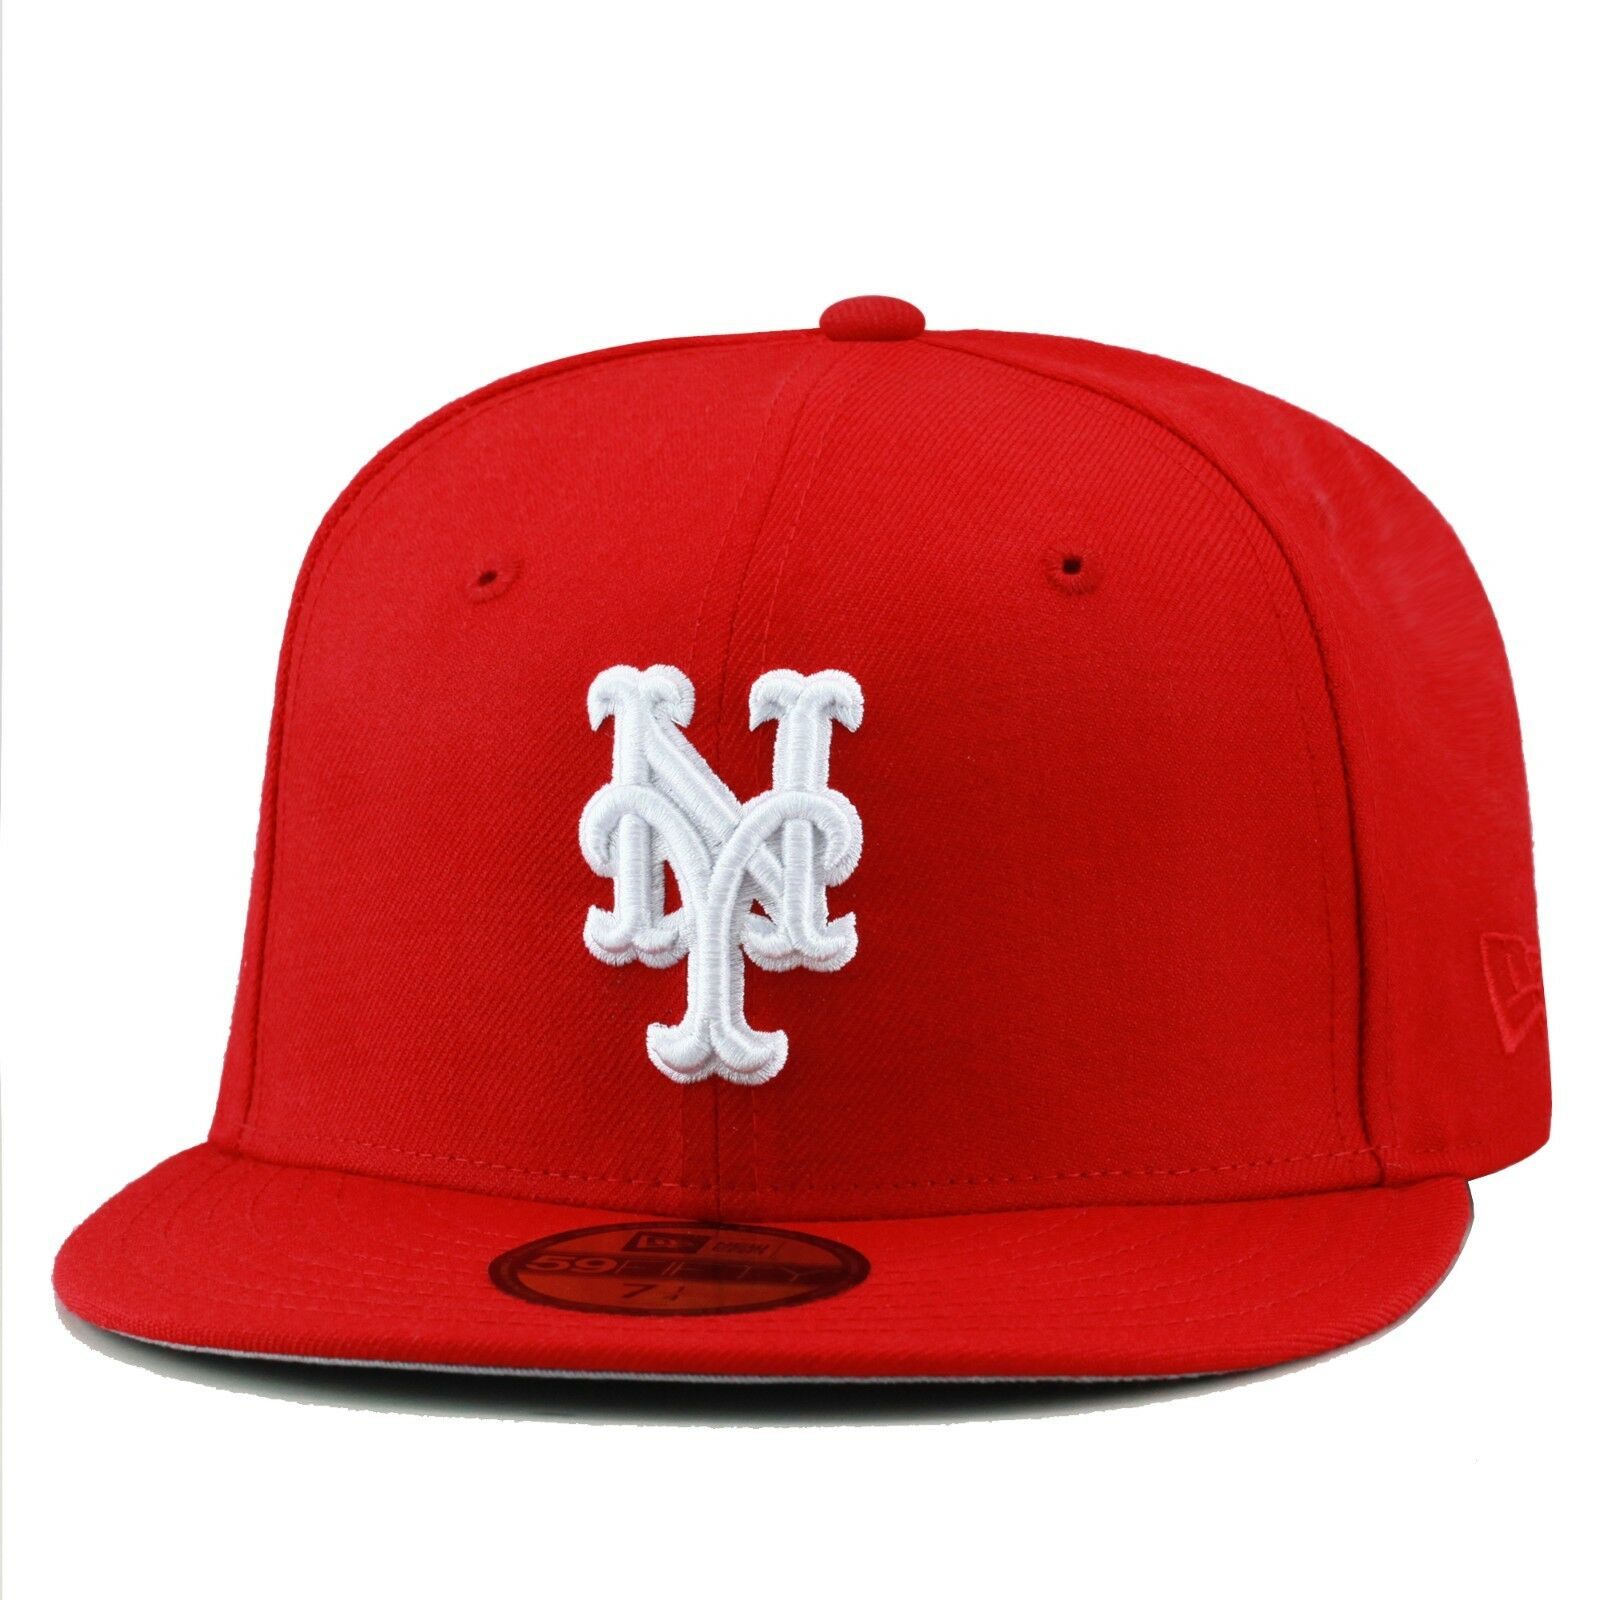 d7d2ae1d31124 New Era New York Mets MLB Fitted Hat Cap All RED White 1 of 3FREE Shipping  ...